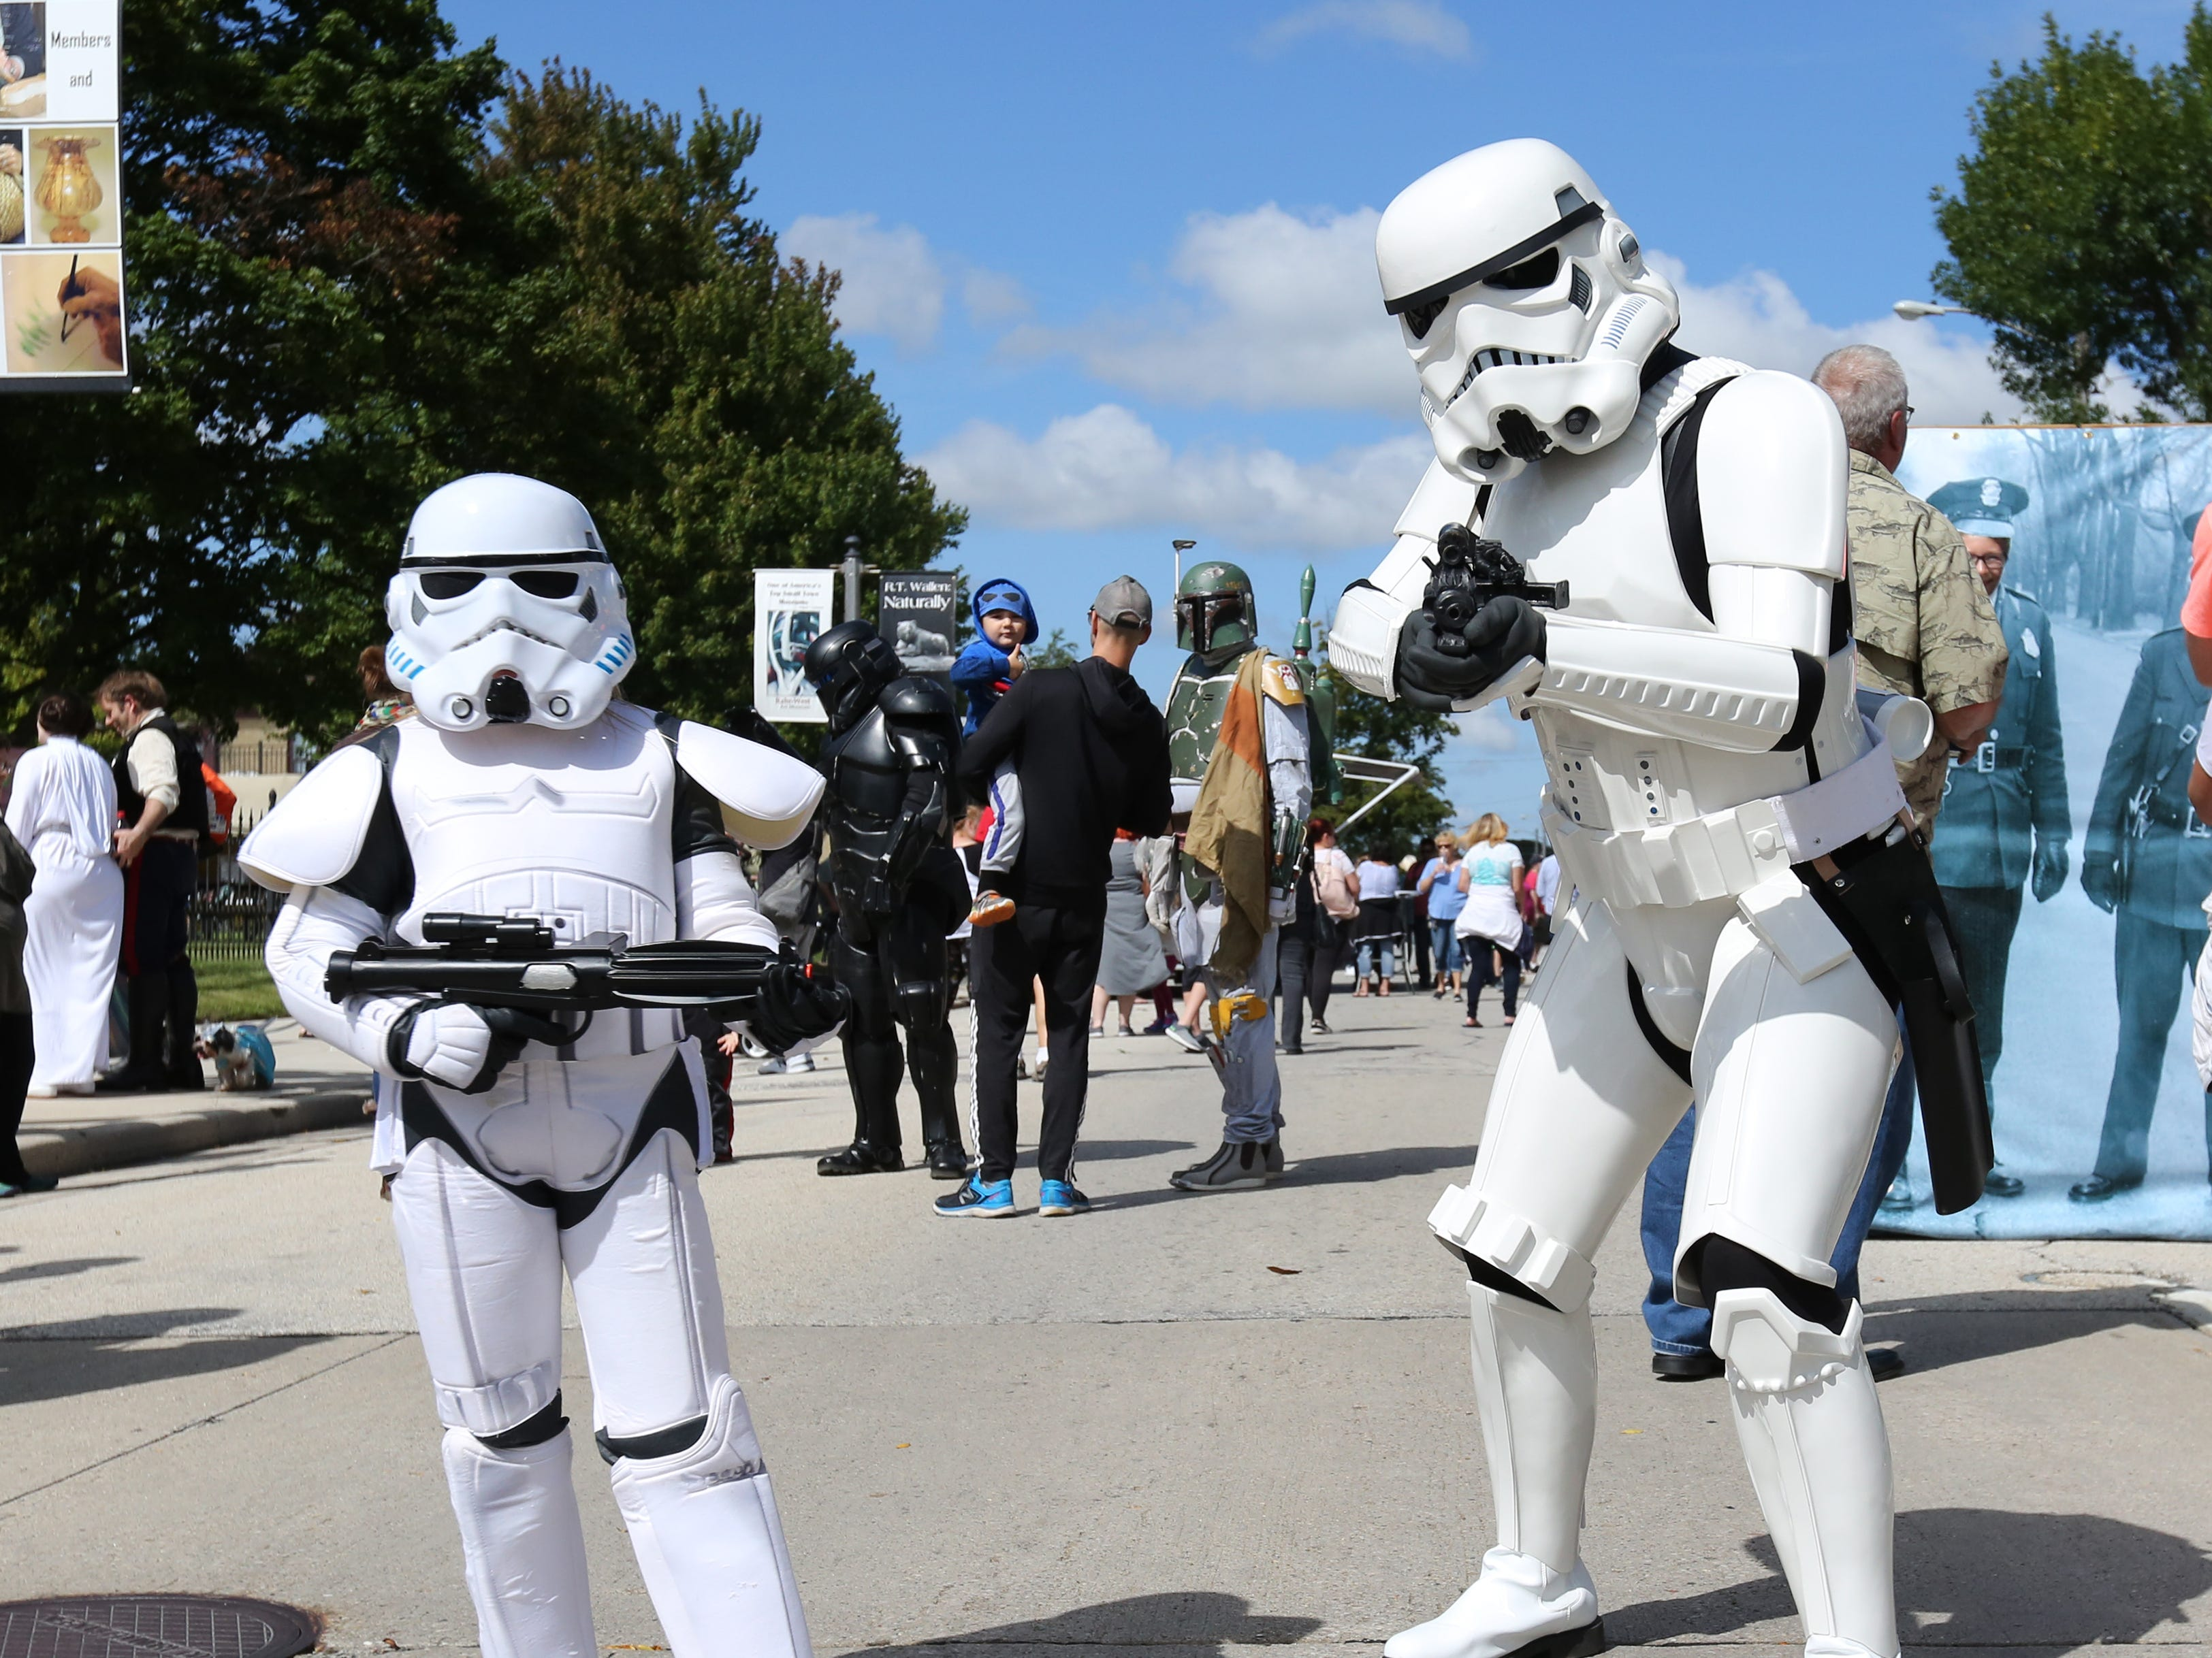 Lauren Pribbernow, 7, and her dad Ryan, of Marshfield, pose as stormtroopers during Sputnikfest at the Rahr-West Museum Saturday, September 8, 2018, in Manitowoc, Wis. Josh Clark/USA TODAY NETWORK-Wisconsin